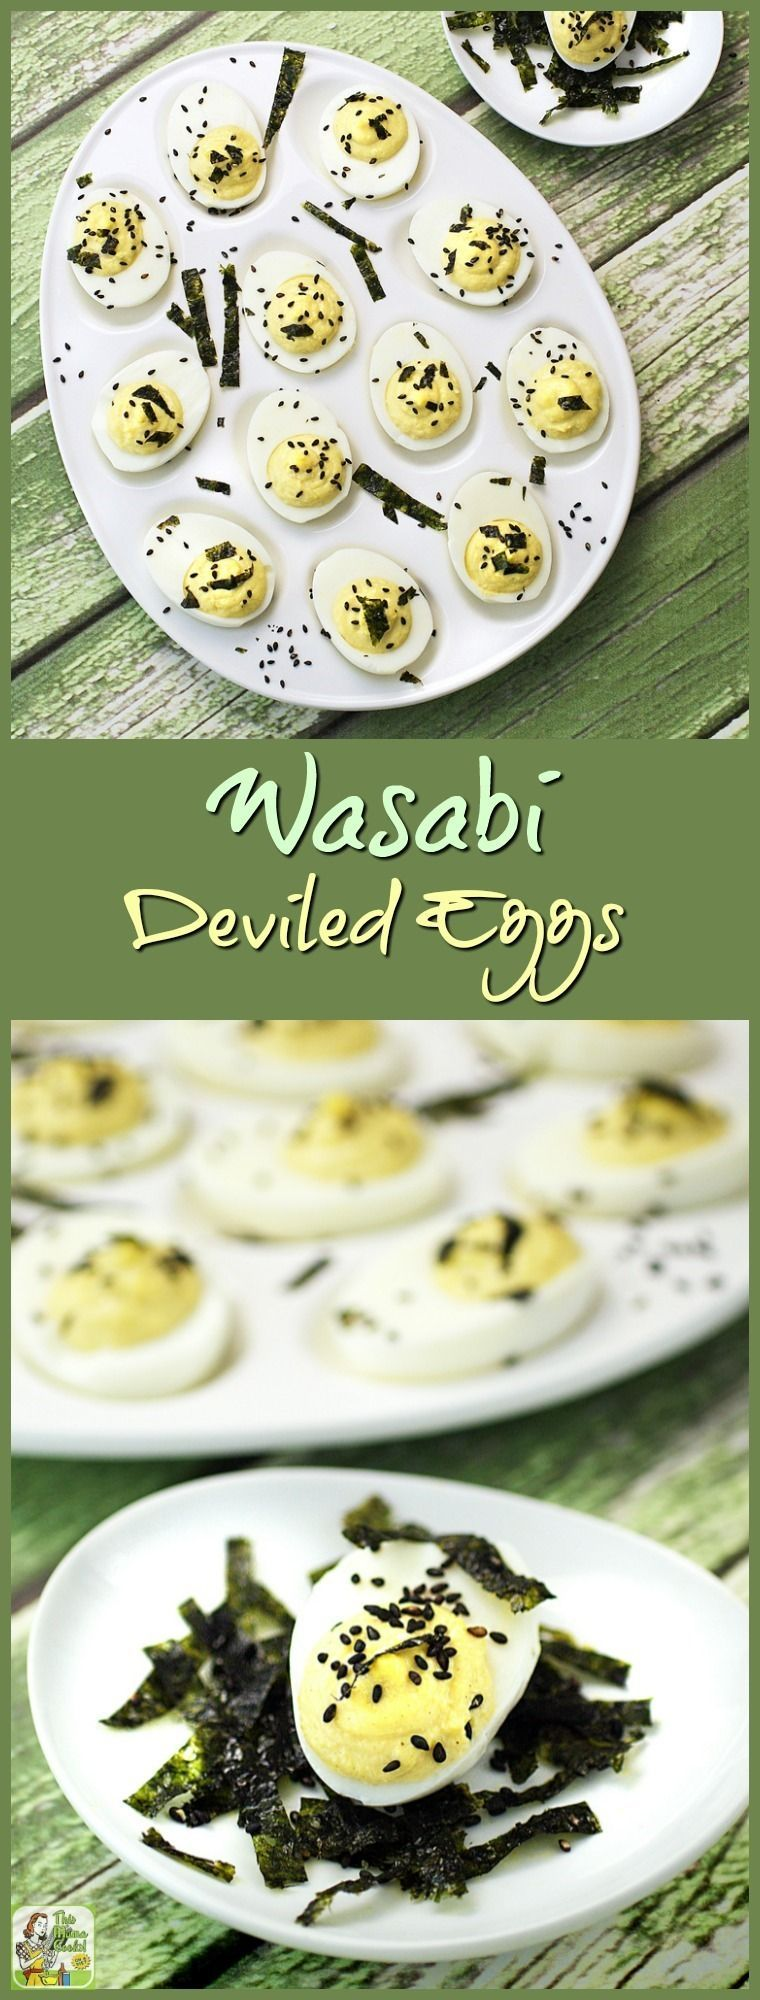 Wasabi Deviled Eggs recipe #deviledeggs